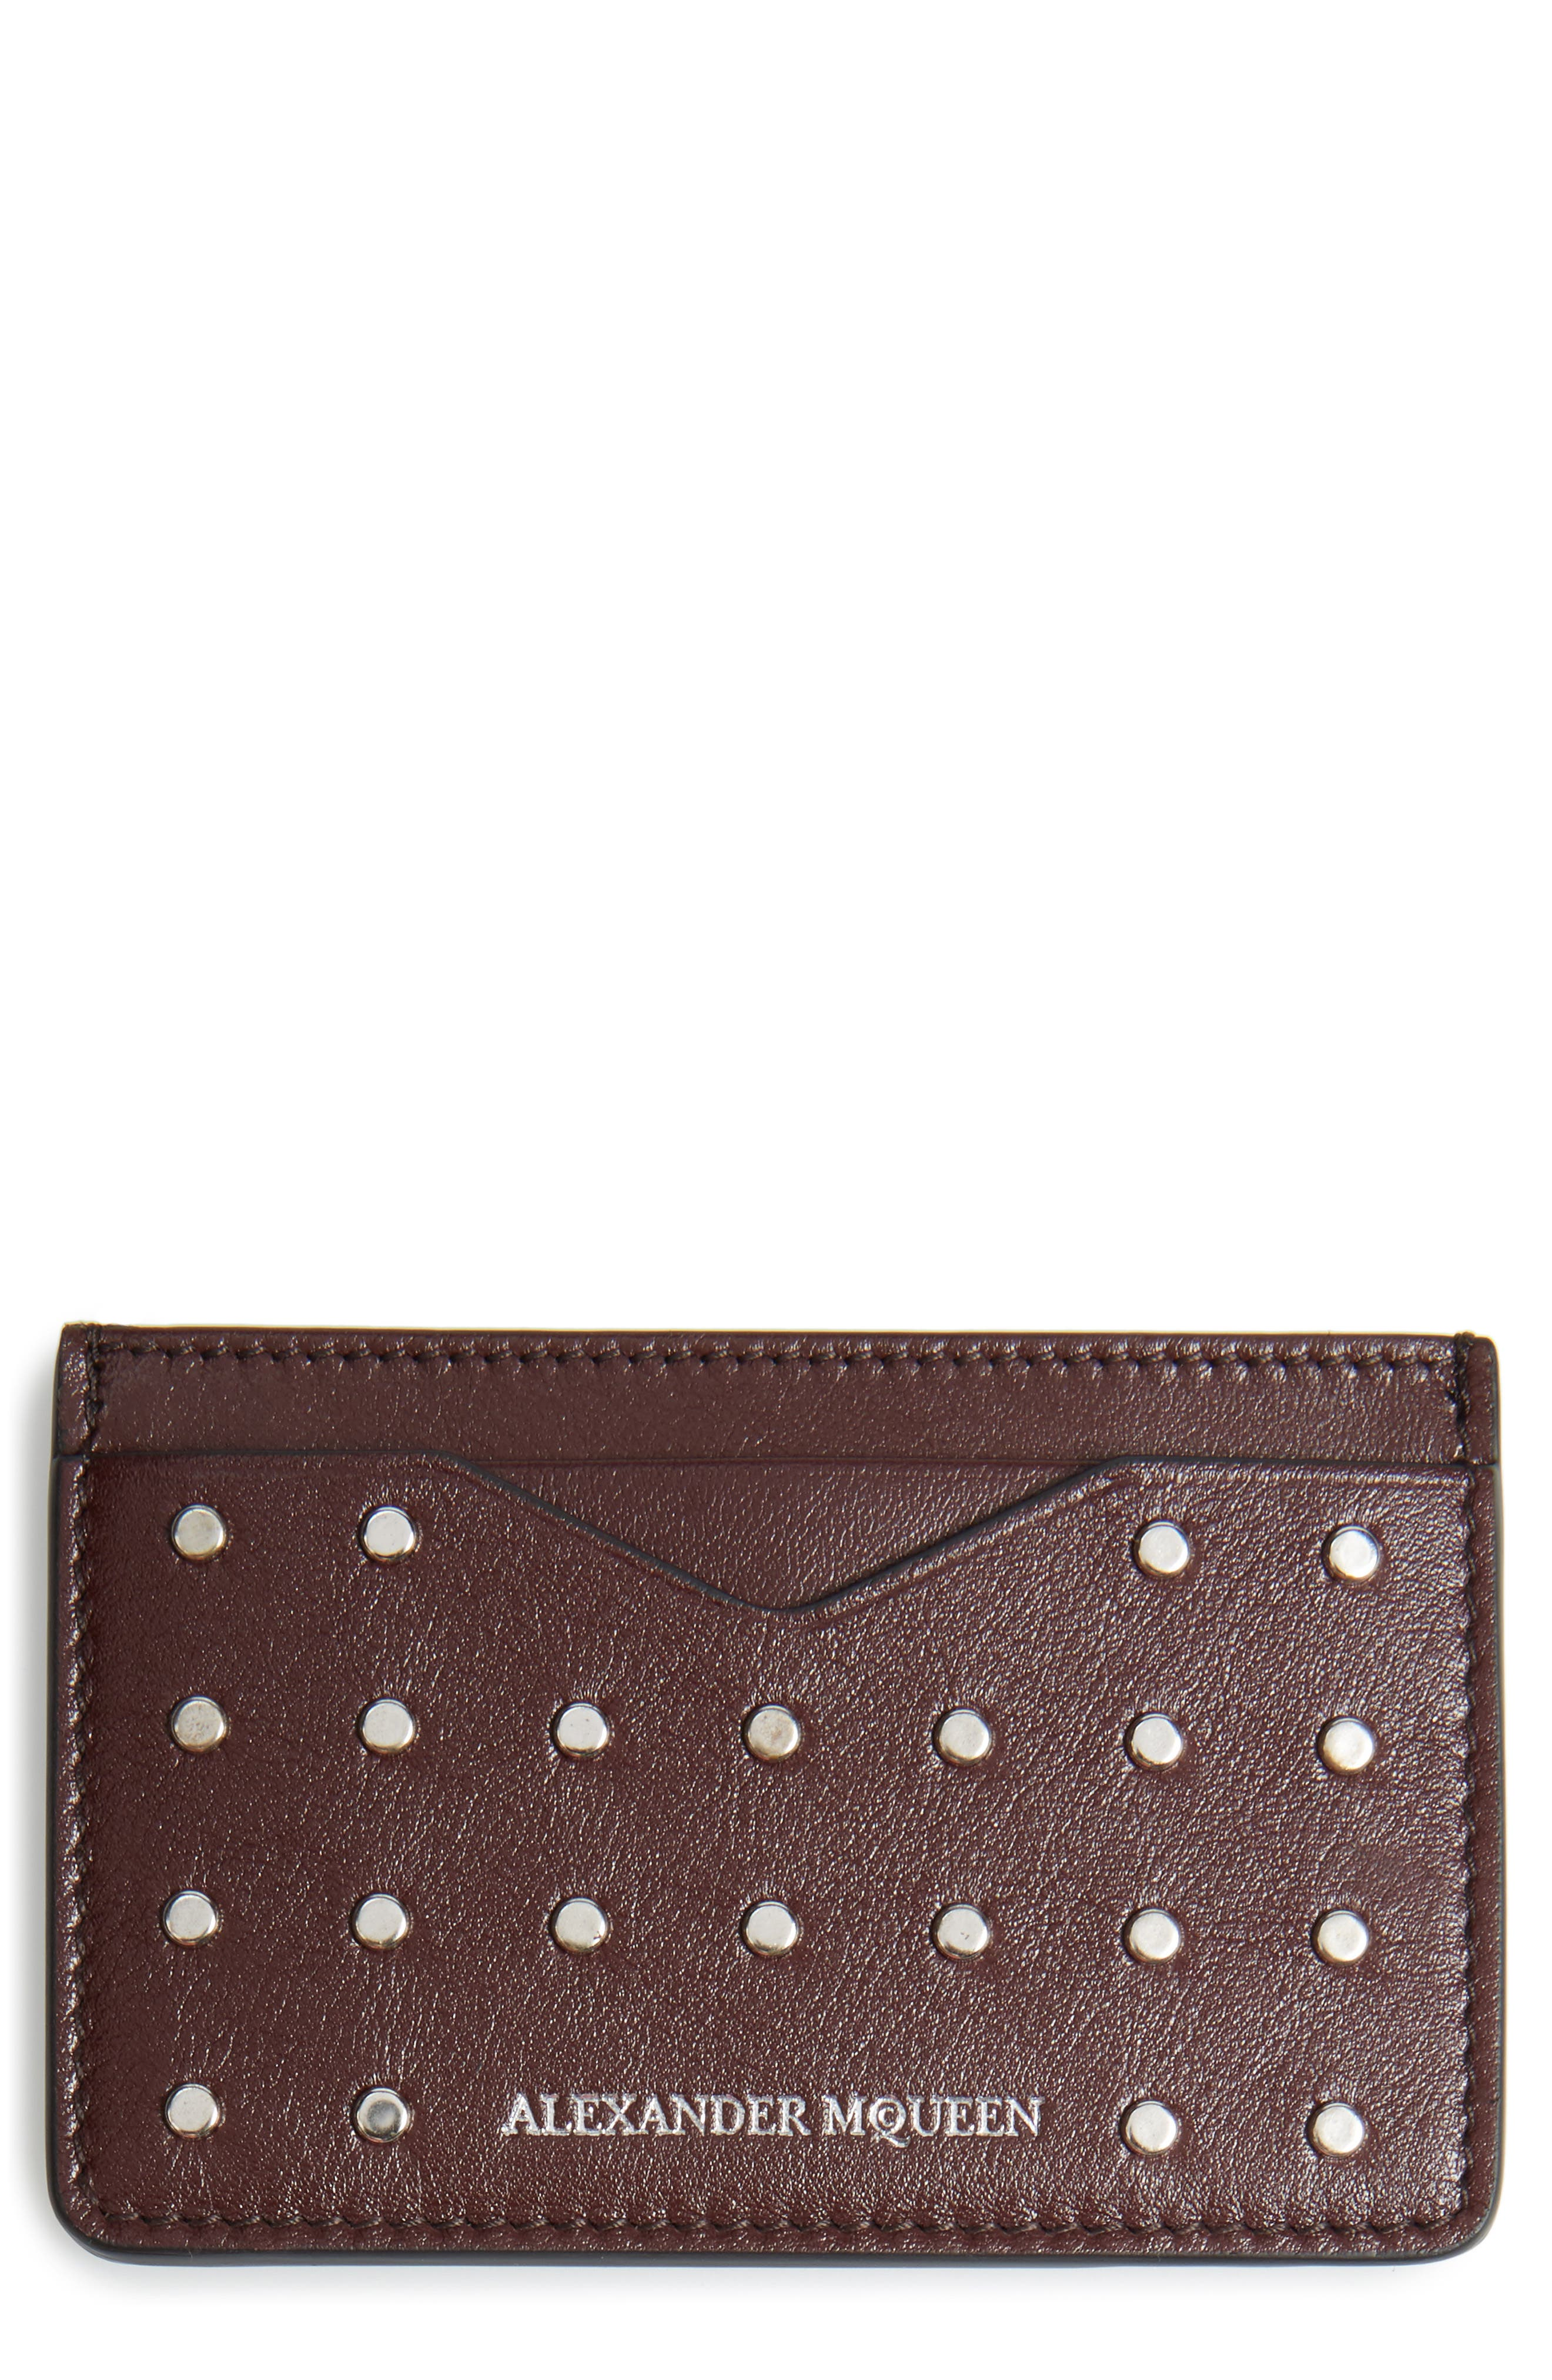 Alternate Image 1 Selected - Alexander McQueen Studded Leather Card Case